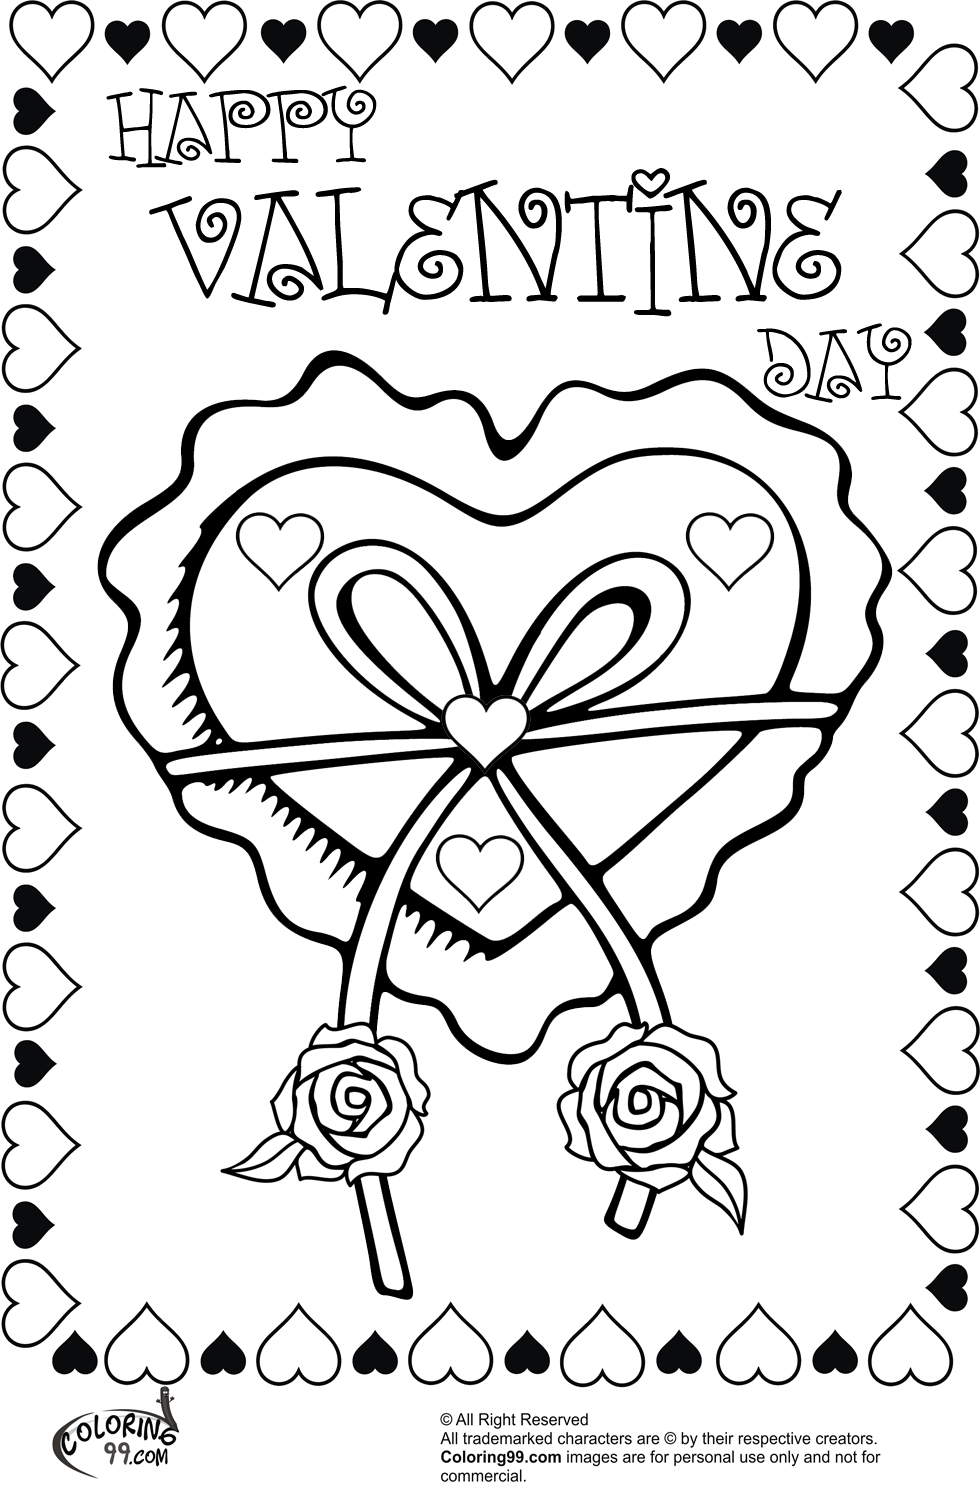 coloring hearts and roses hearts and roses for the love one coloring page color luna hearts and roses coloring